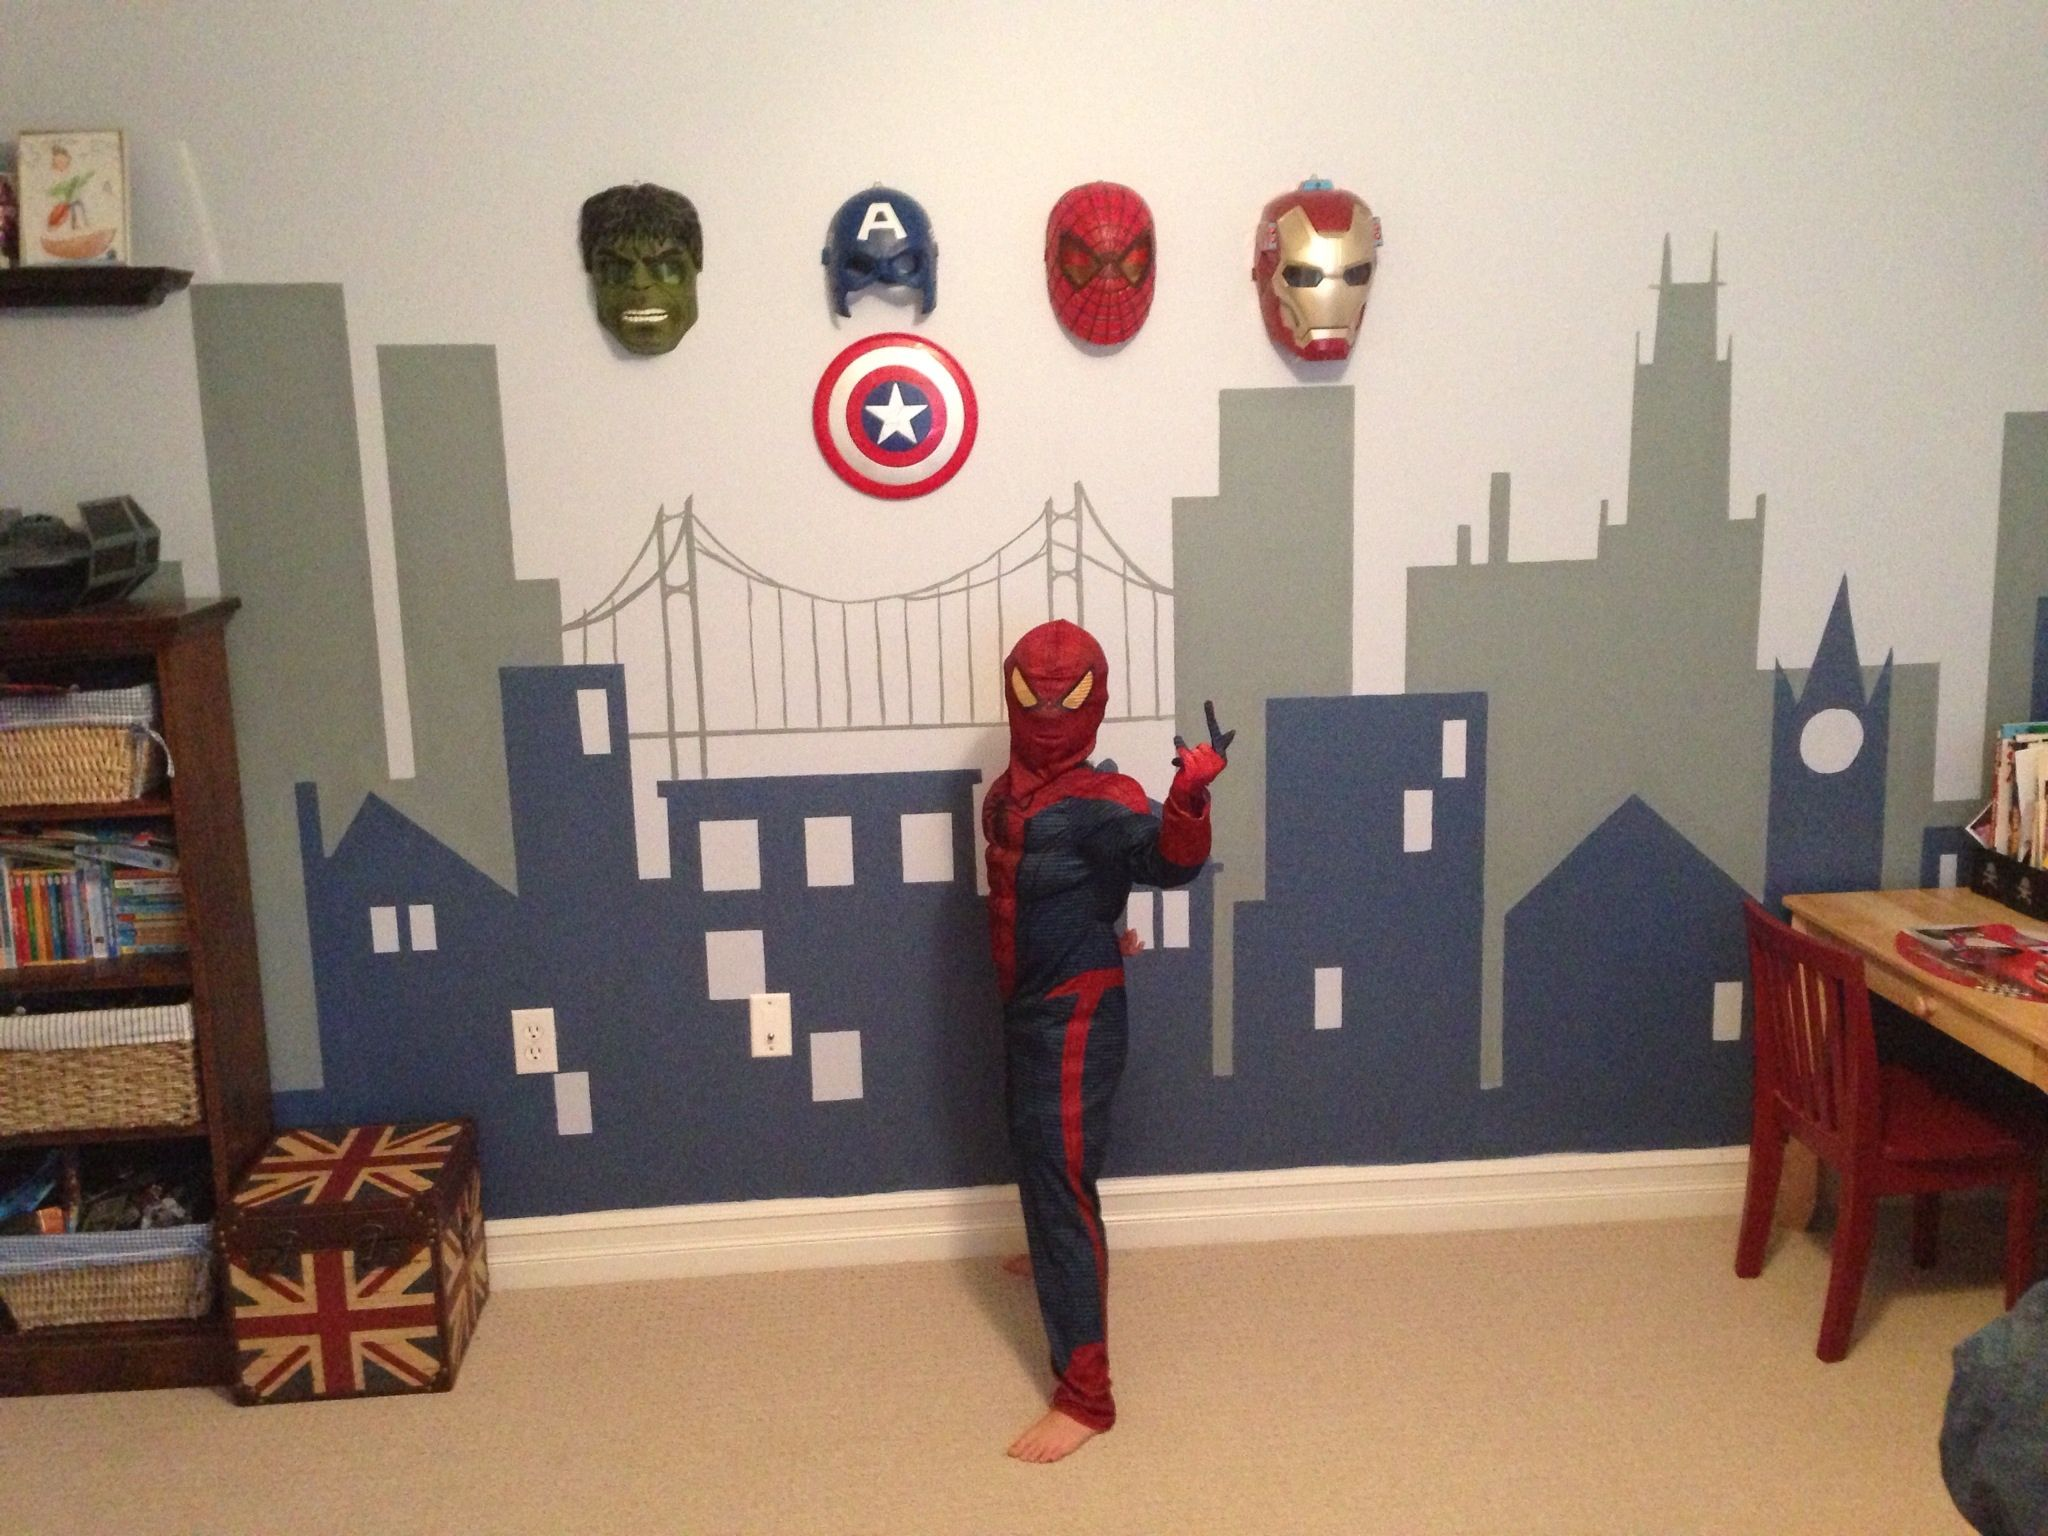 I like the idea of hanging the masks on the wall for Boys bedroom mural